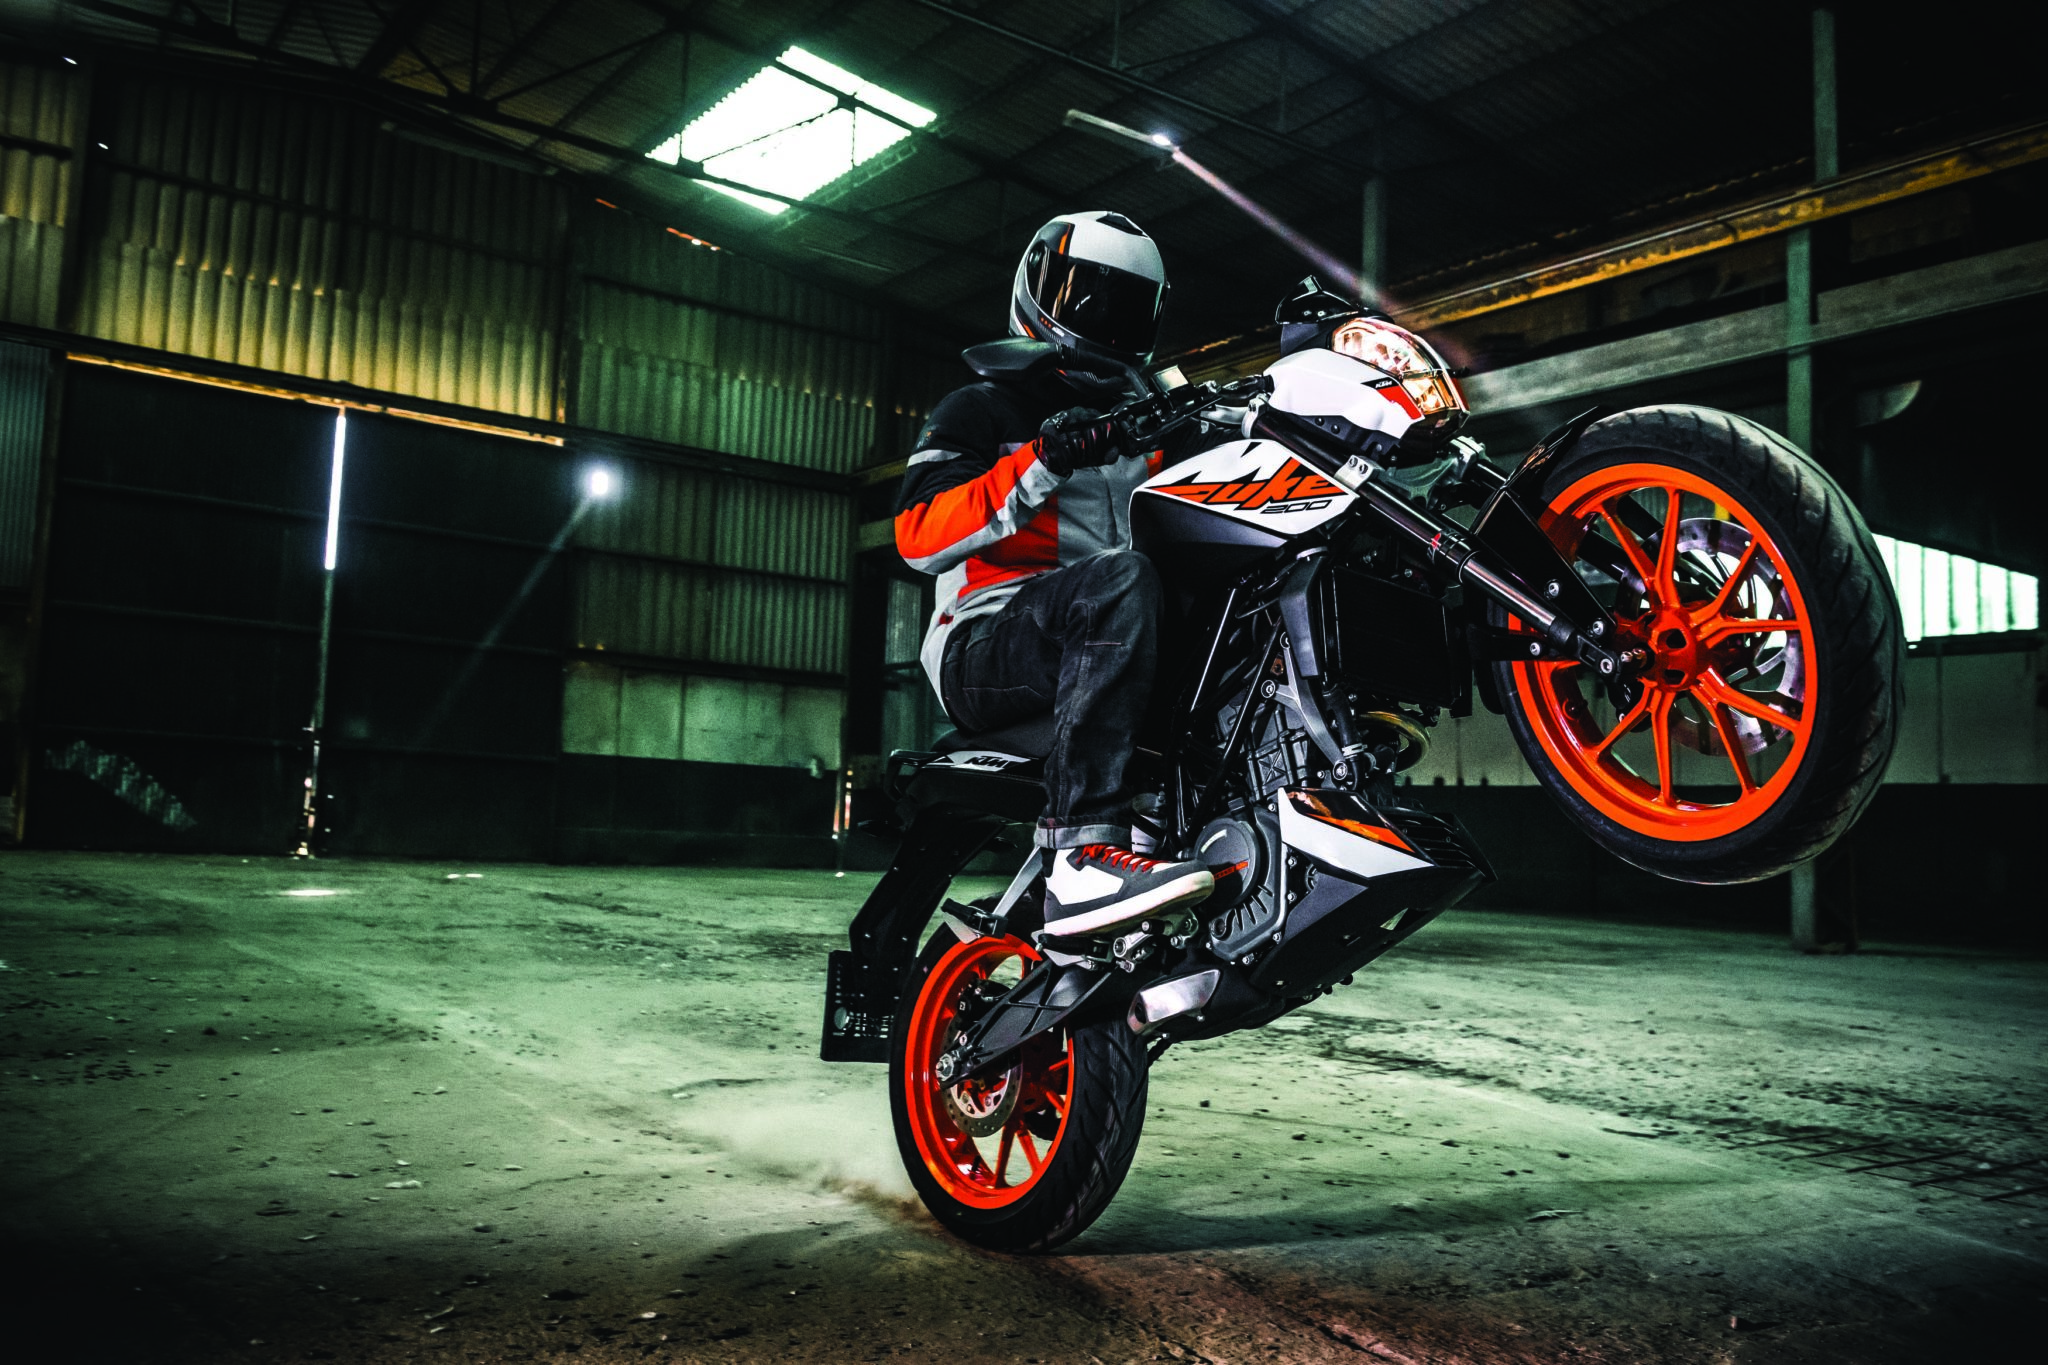 KTM Malaysia presents the new 200 Duke!